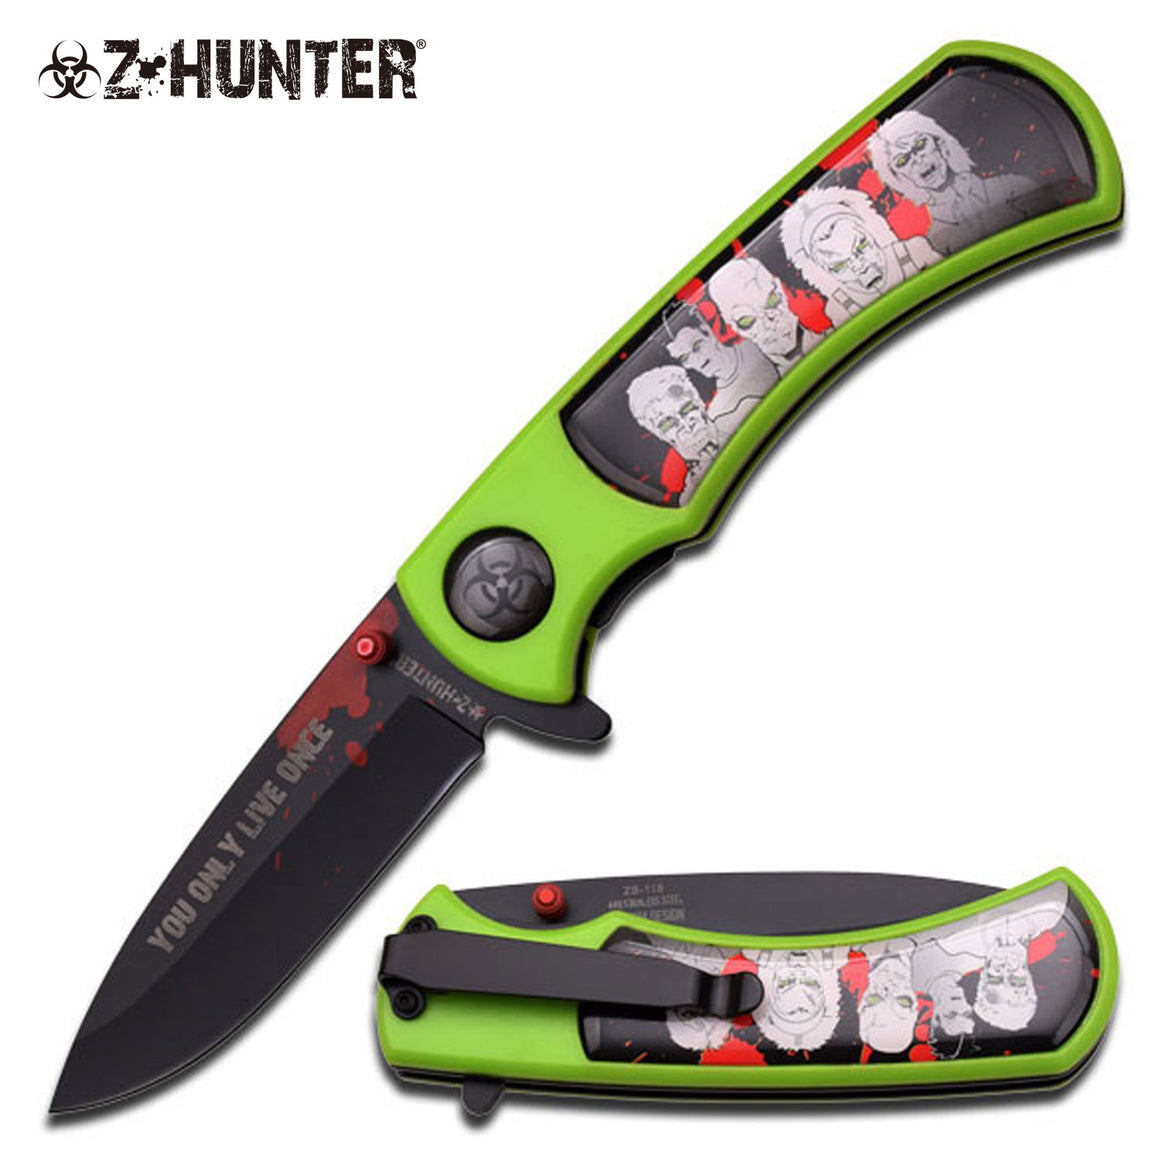 Z-Hunter ZB-118BG Spring Assisted Knife